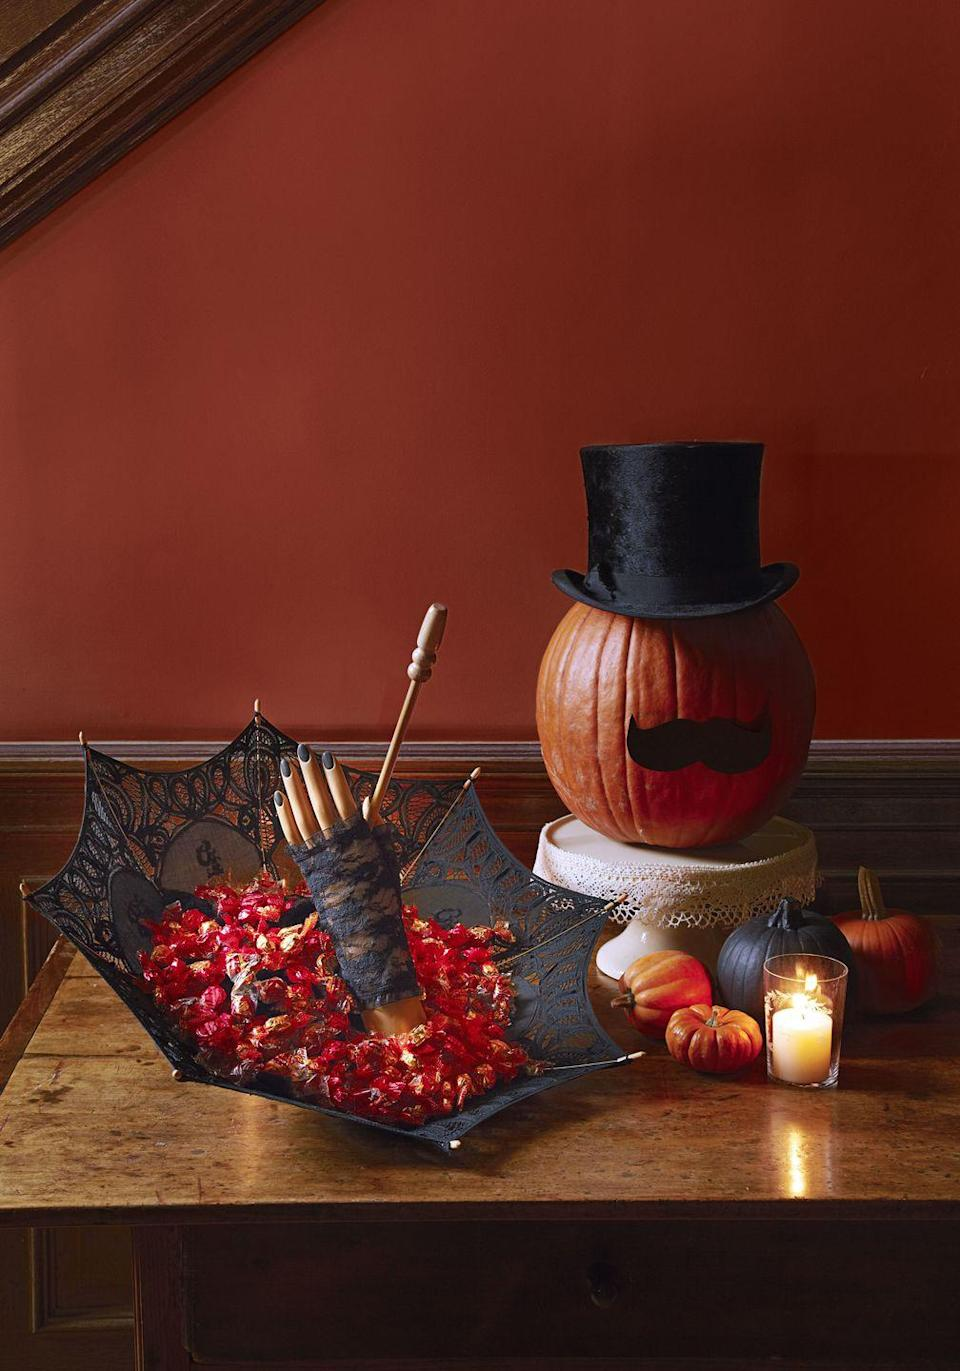 """<p>A top hat and paper mustache make for one fancy jack-o'-lantern — no scooping, carving or painting required. Prop the squash on a <a href=""""https://www.amazon.com/TRSPCWR-Dessert-Display-Cupcake-Birthday/dp/B08P84KTRS/?tag=syn-yahoo-20&ascsubtag=%5Bartid%7C10055.g.1714%5Bsrc%7Cyahoo-us"""" rel=""""nofollow noopener"""" target=""""_blank"""" data-ylk=""""slk:cake stand"""" class=""""link rapid-noclick-resp"""">cake stand</a> for an extra-dignified perch.</p><p><a class=""""link rapid-noclick-resp"""" href=""""https://www.amazon.com/Black-Magician-Costume-Funny-Party/dp/B007ZFXDLG?tag=syn-yahoo-20&ascsubtag=%5Bartid%7C10055.g.1714%5Bsrc%7Cyahoo-us"""" rel=""""nofollow noopener"""" target=""""_blank"""" data-ylk=""""slk:SHOP TOP HATS"""">SHOP TOP HATS</a><br></p>"""